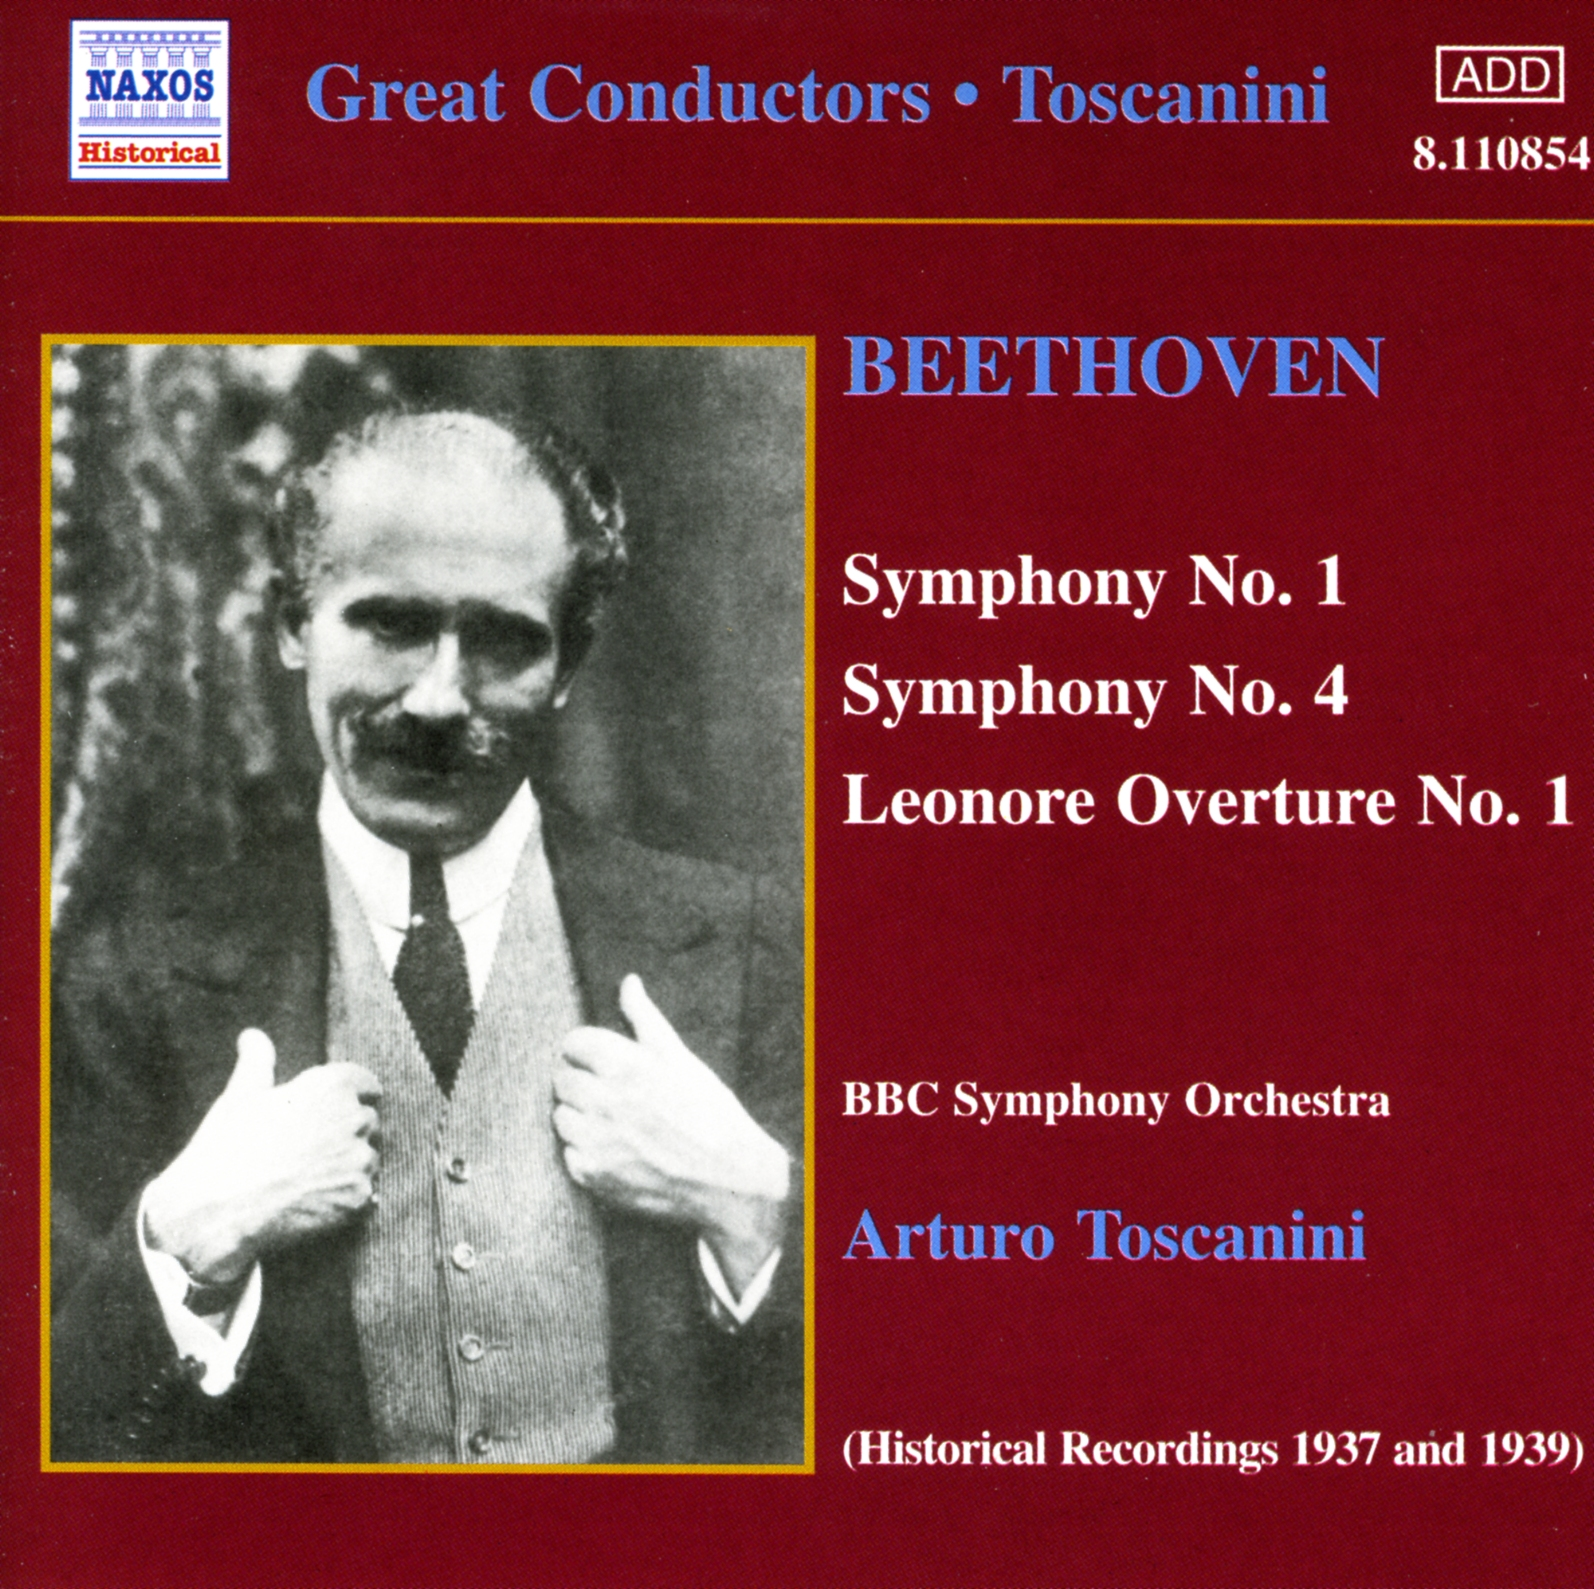 BEETHOVEN: Symphonies 1 and 4 (Toscanini) Classical Naxos